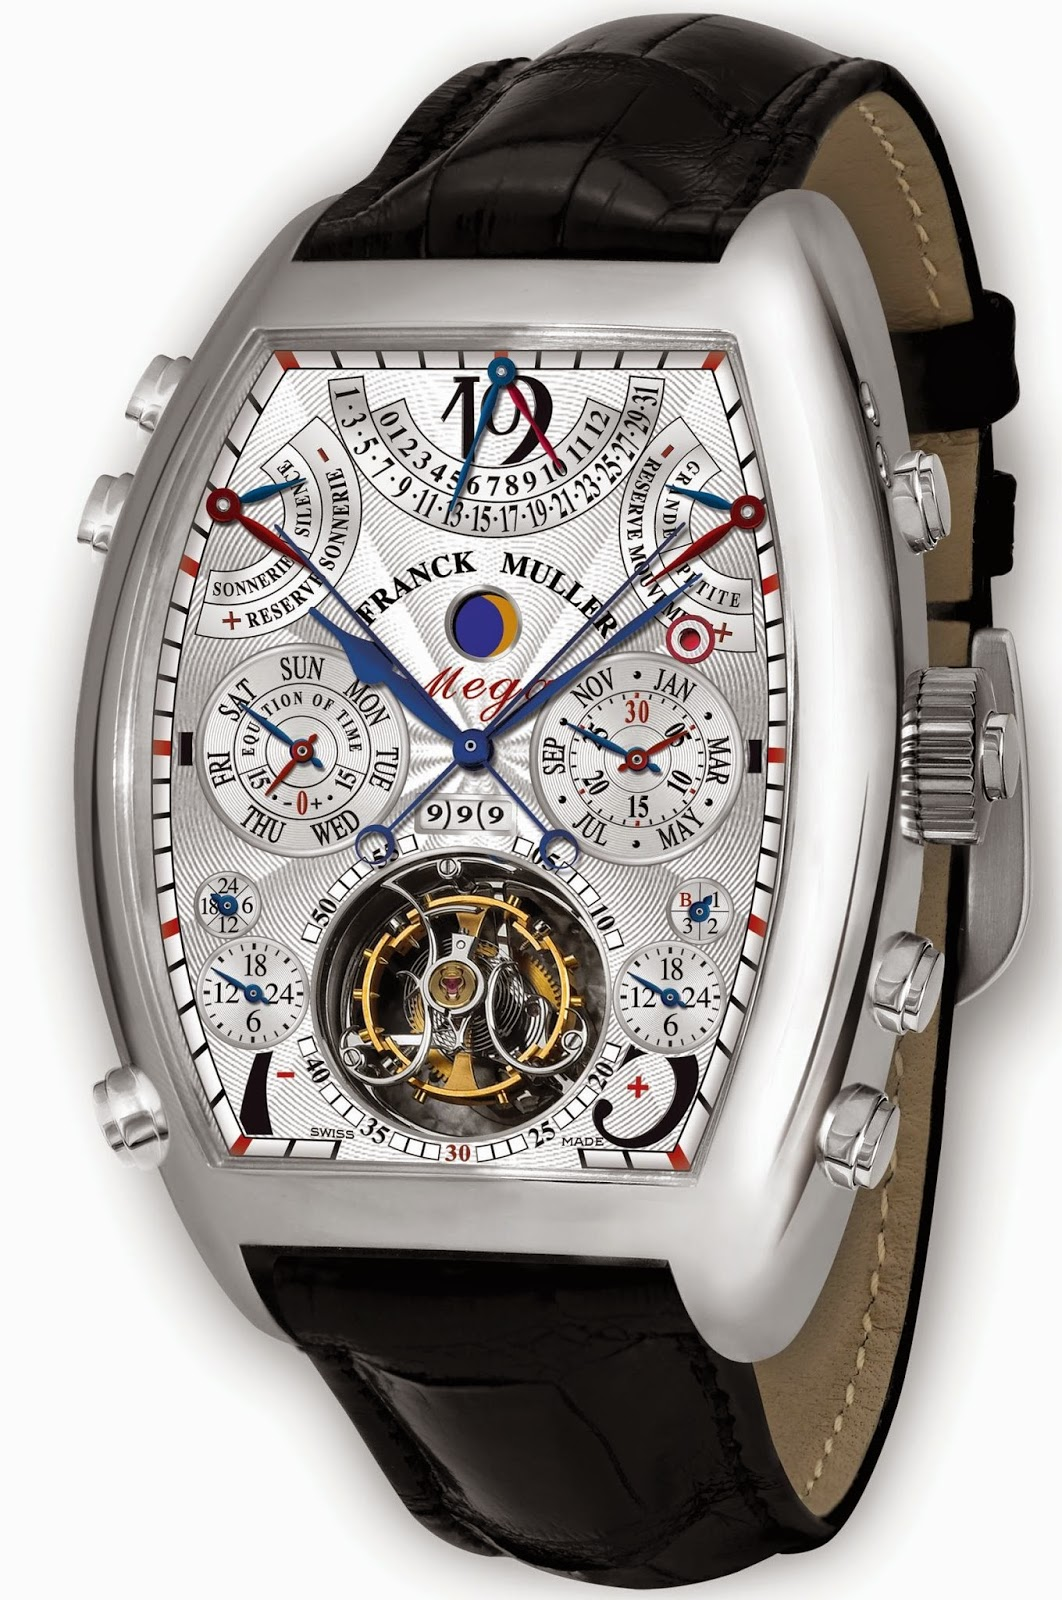 Franck Muller Aeternitas Mega 4 replica watch